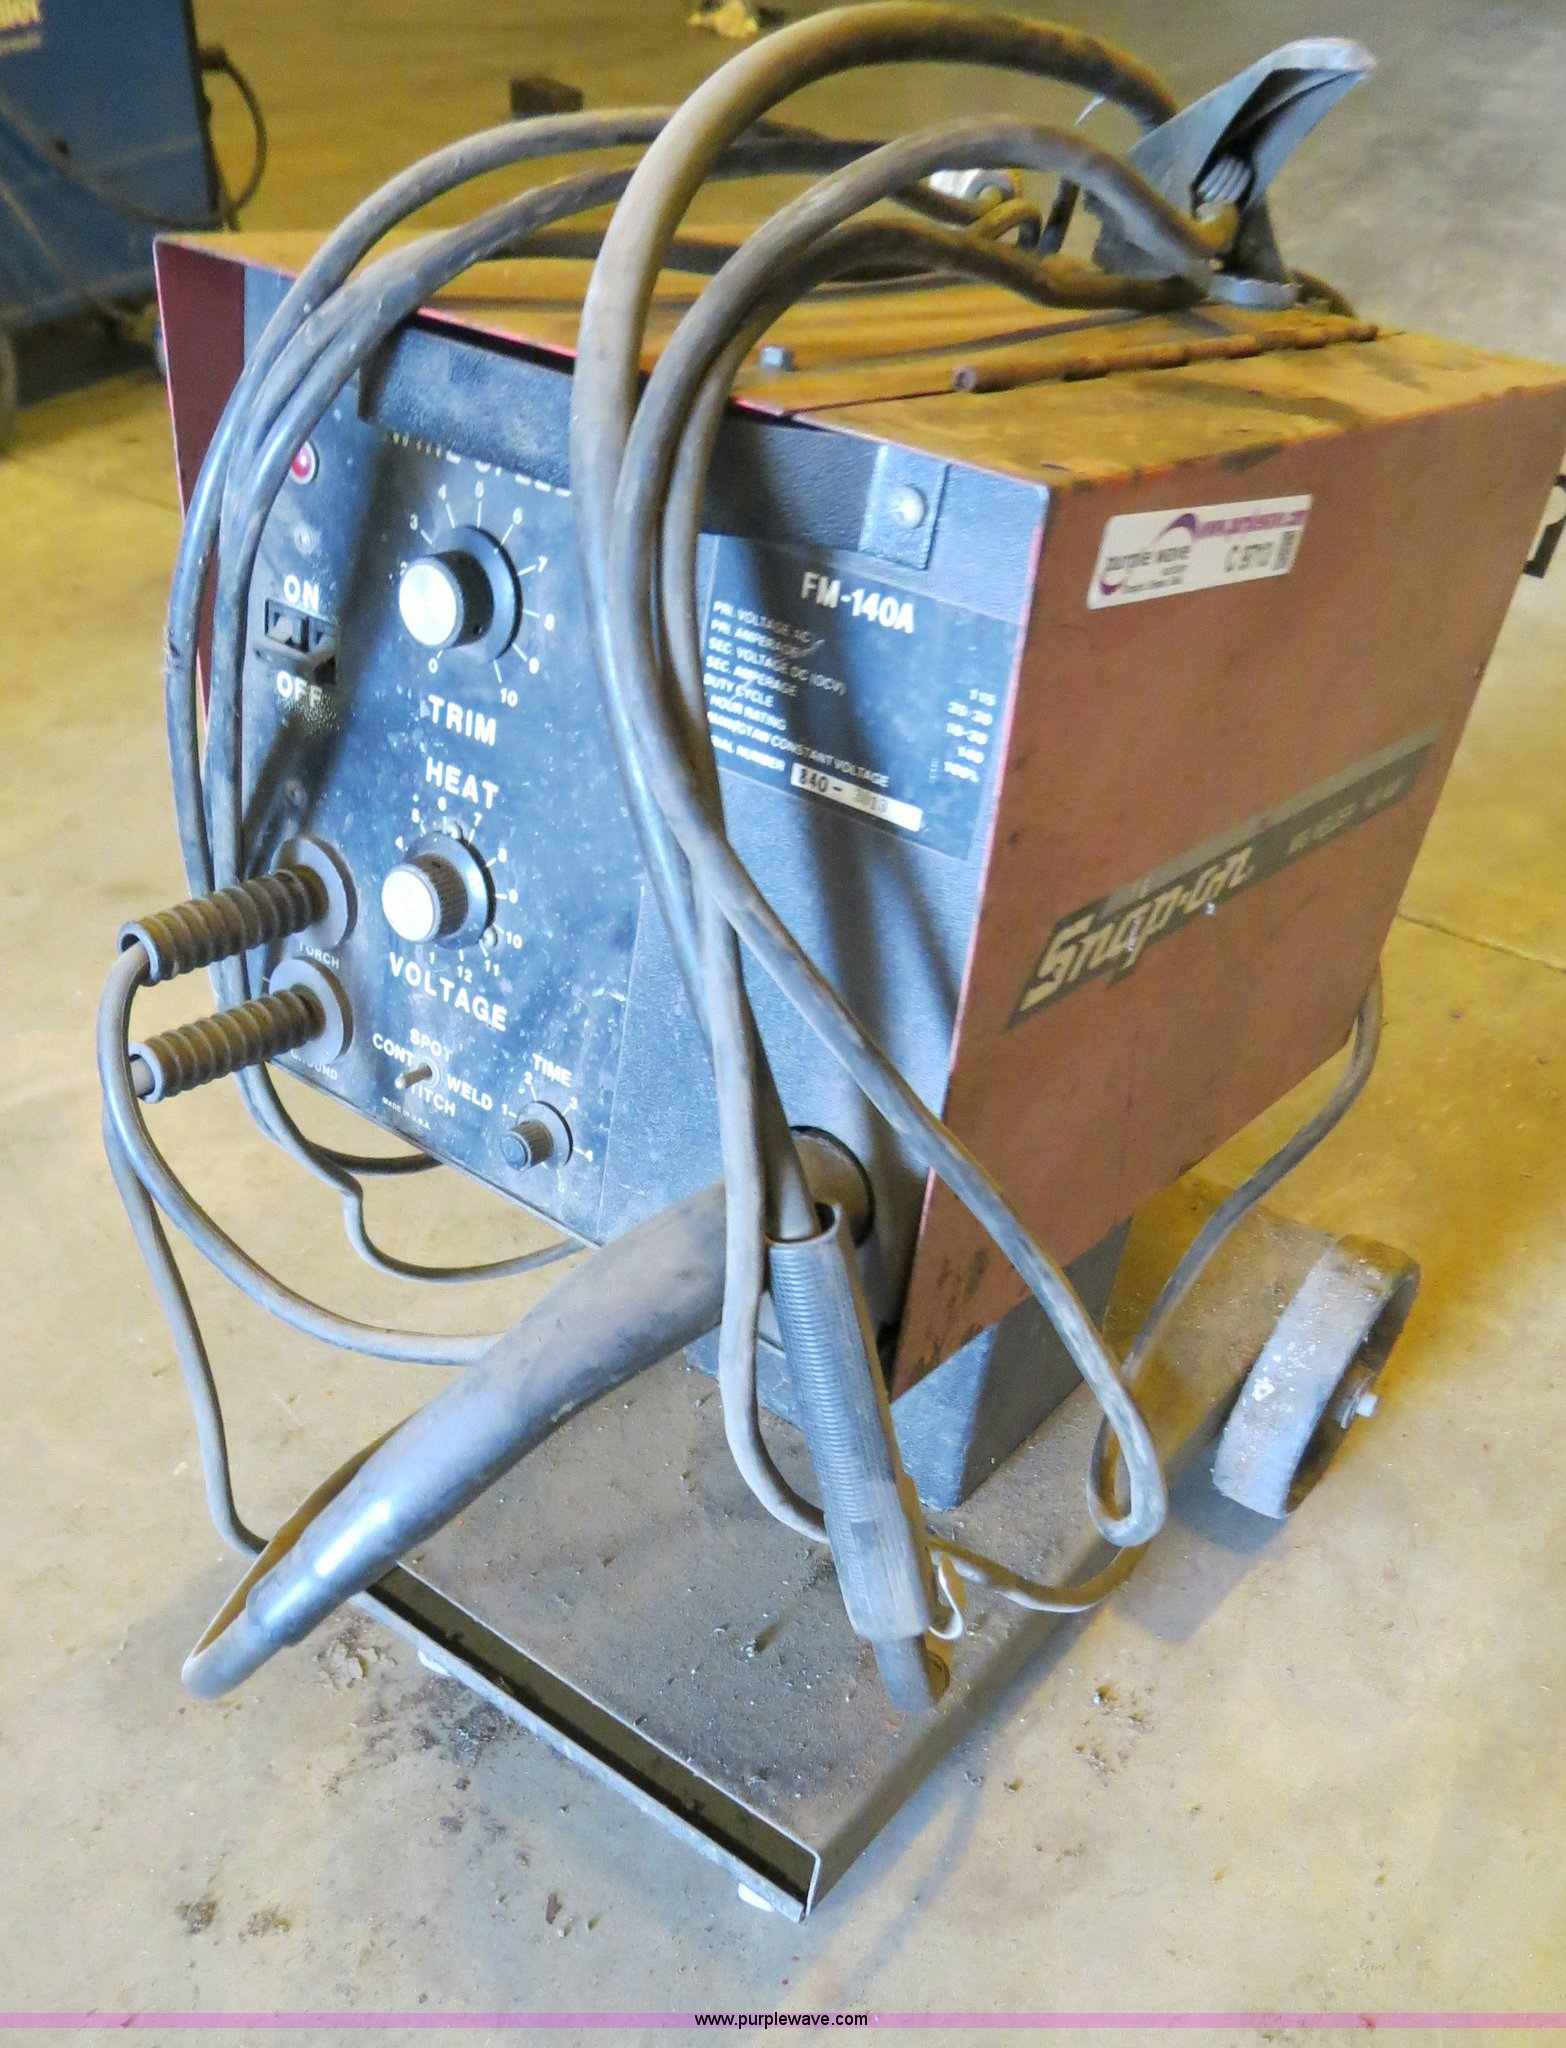 Snap-On MIG welder | Item C9713 | SOLD! June 27 Midwest Auct...